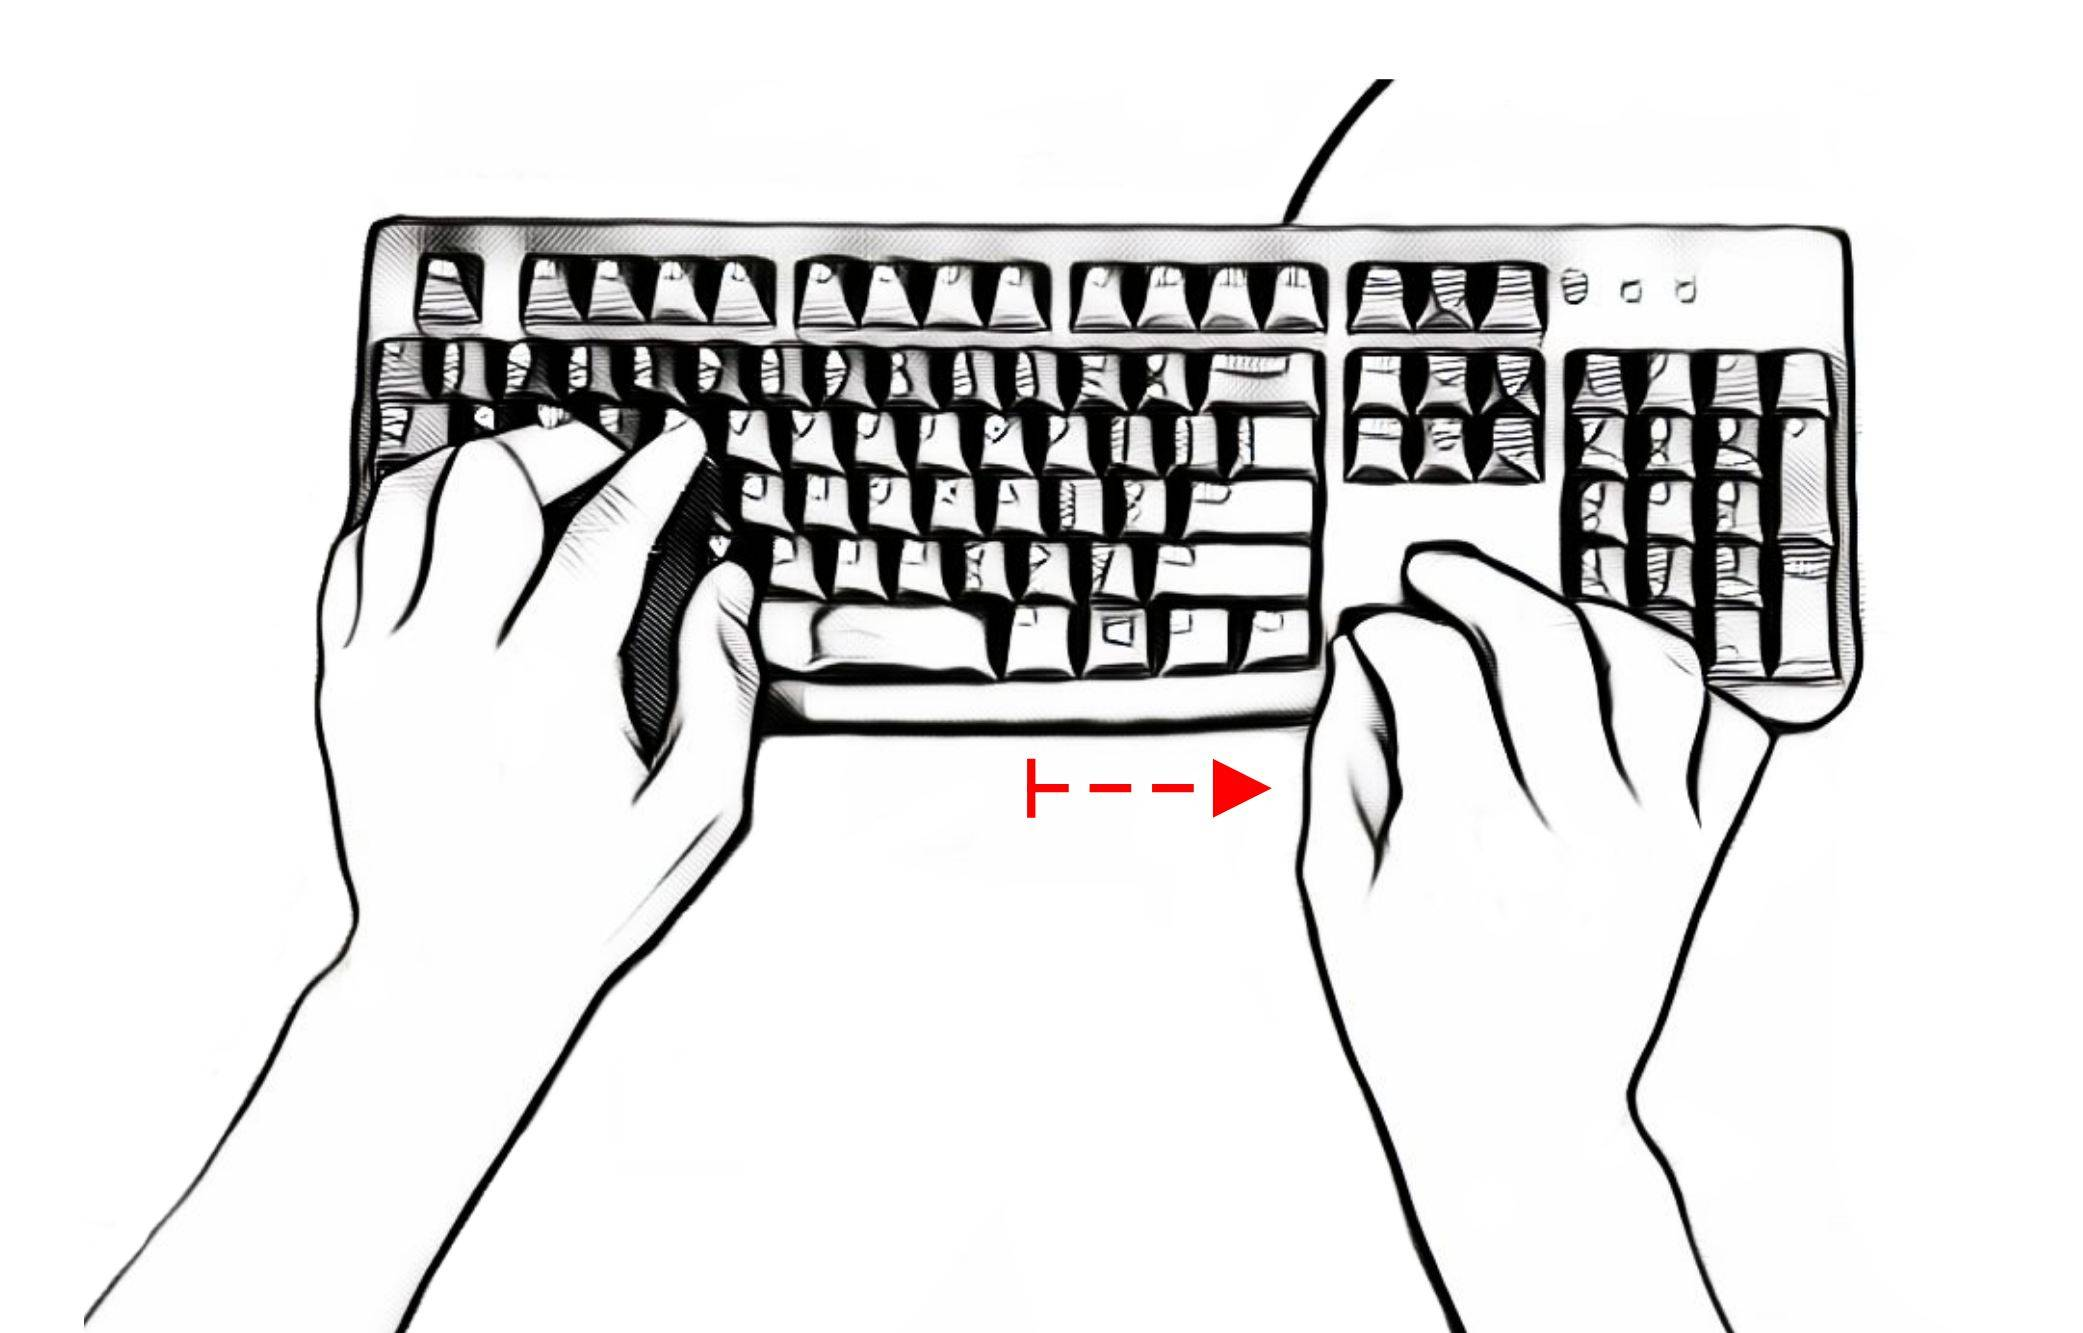 standard keyboard navigation keys